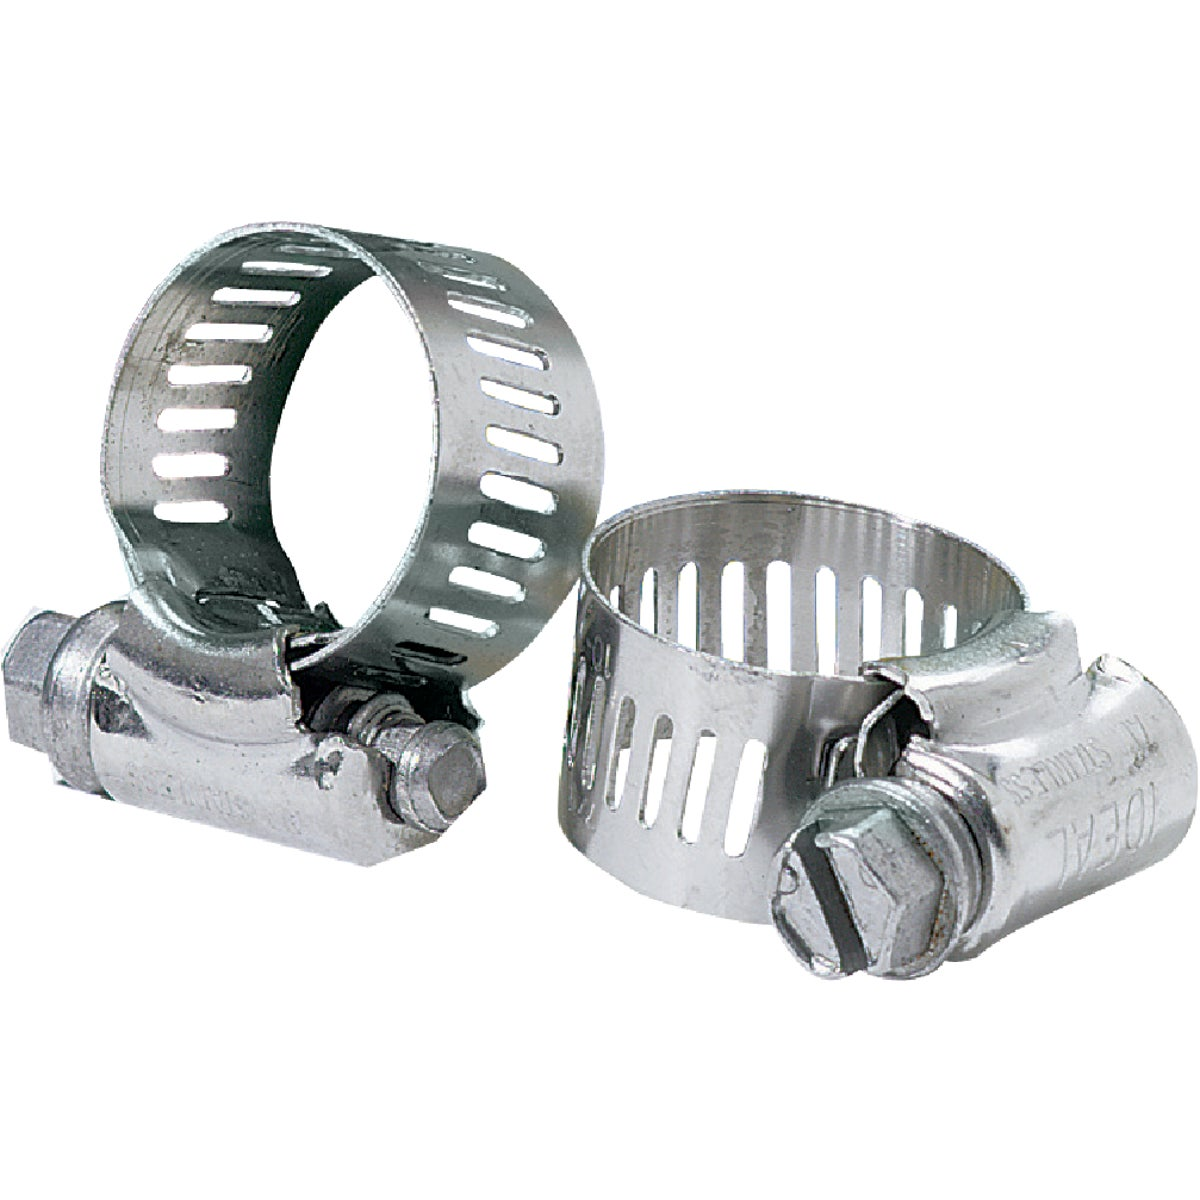 "2-1/2"" TO 3-1/2"" CLAMP - 6748153 by Ideal Corp"